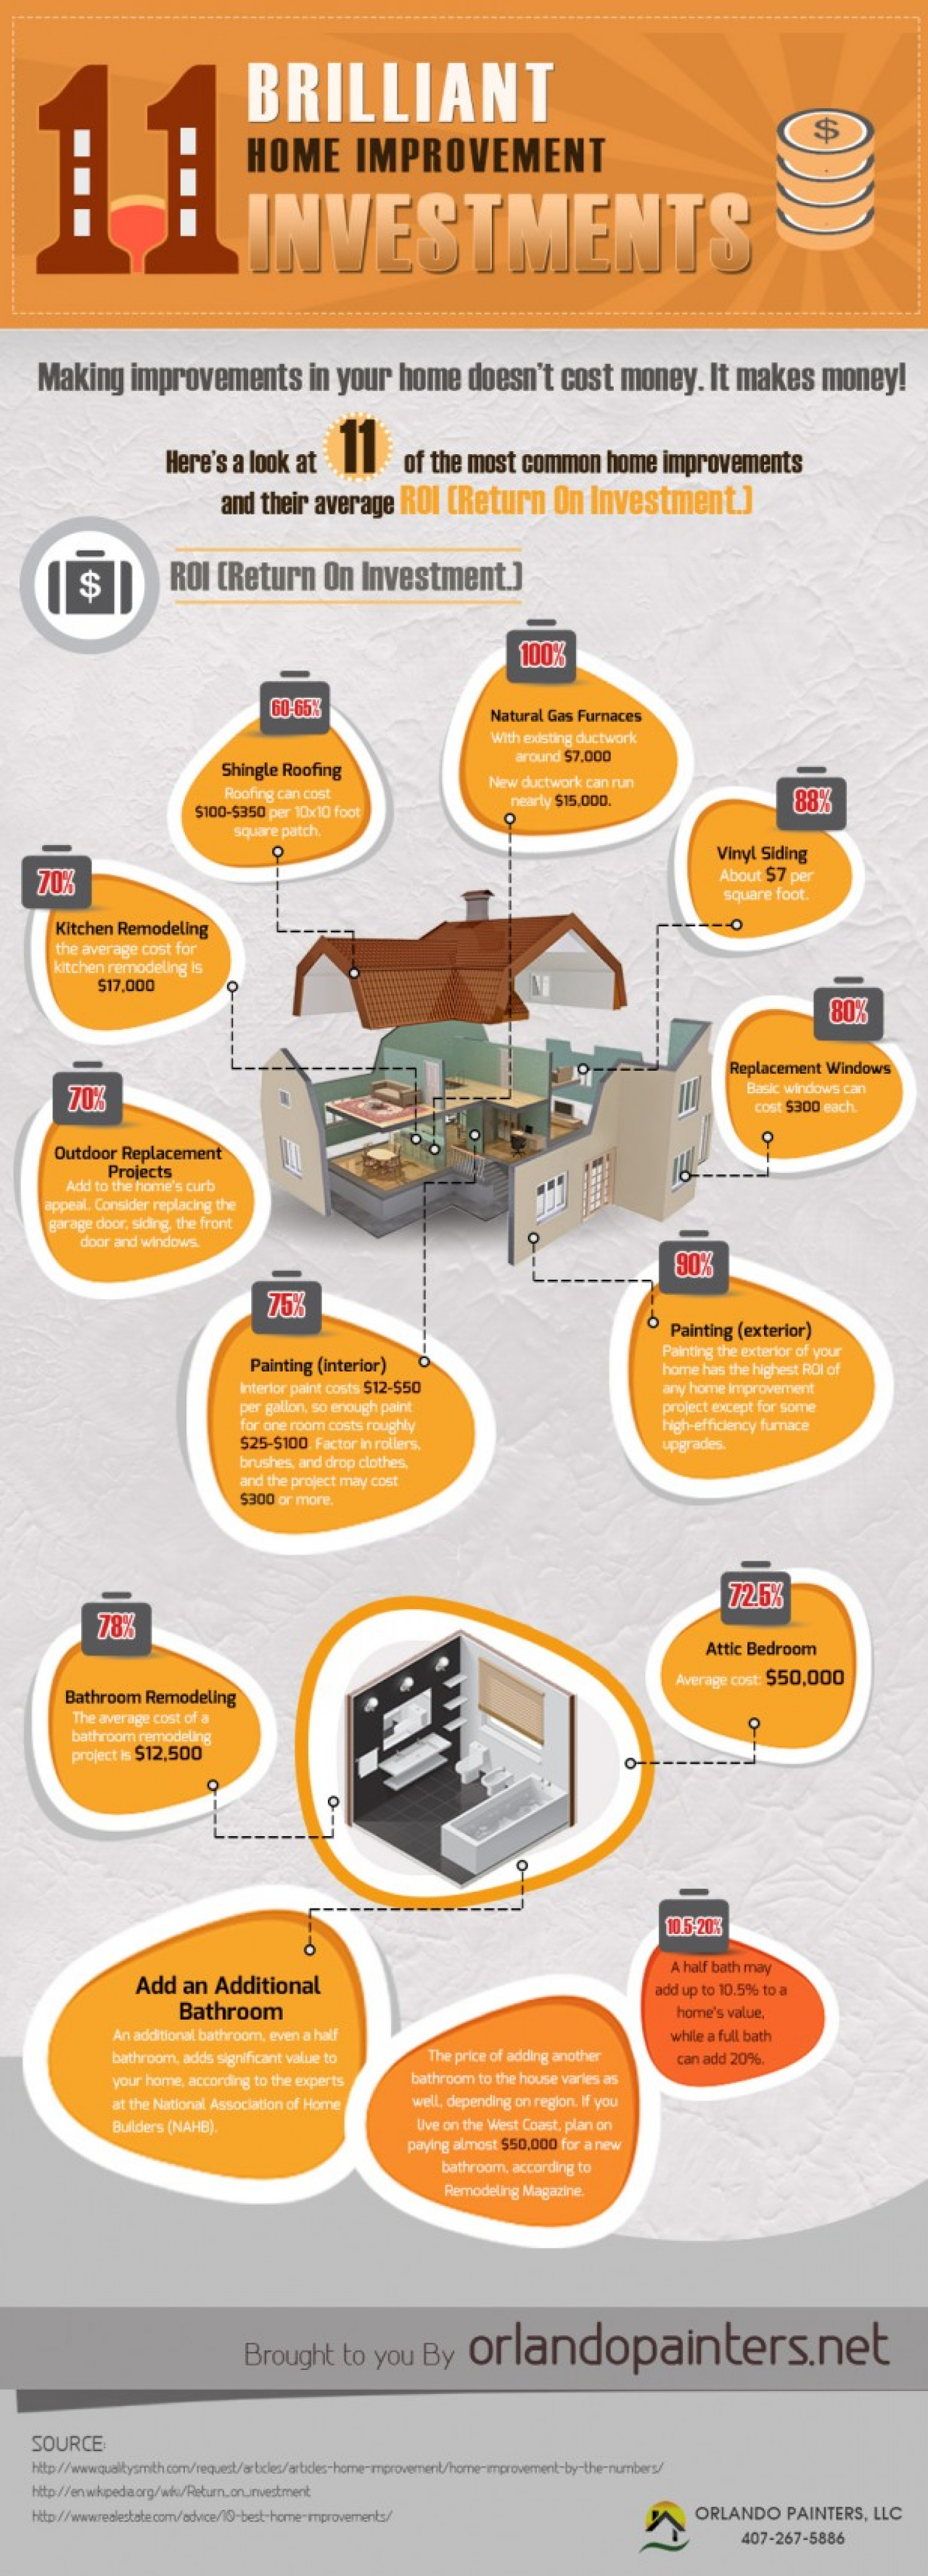 11 Brilliant Home Improvement Investments Infographic